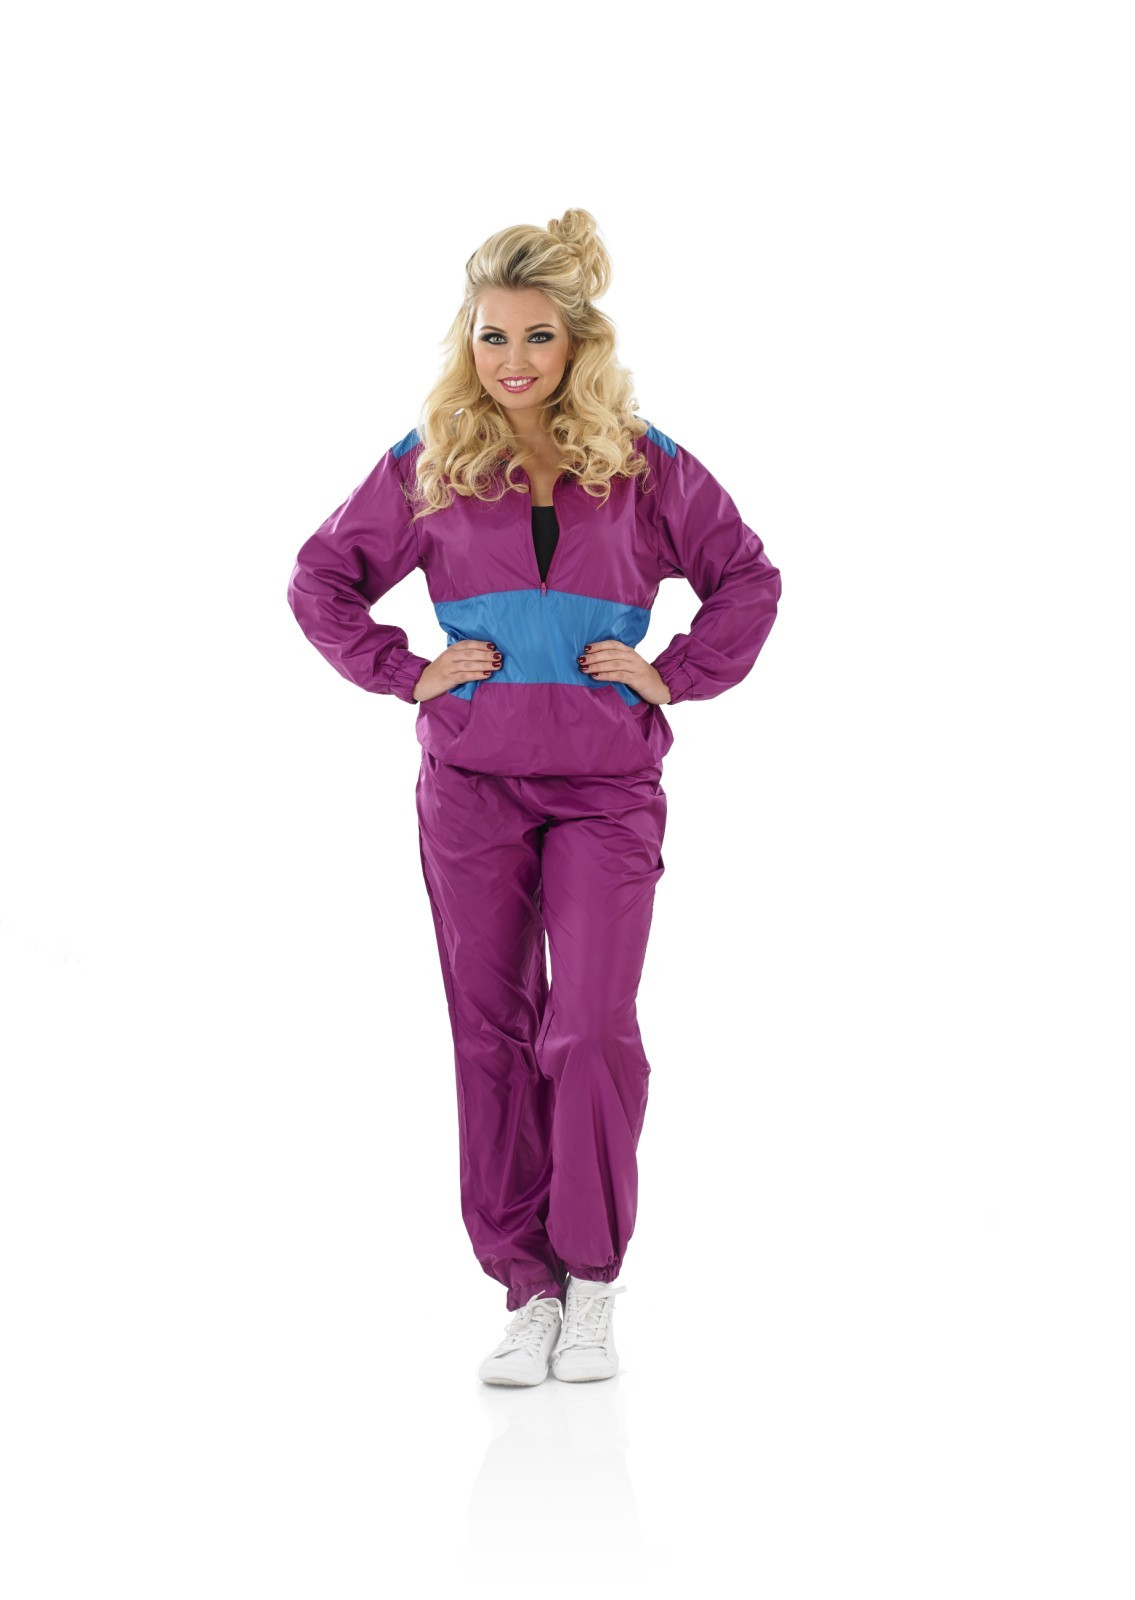 Ladies shell suit costume for 90s scouser fancy dress adults ladies shell suit costume for 90s scouser fancy sciox Image collections